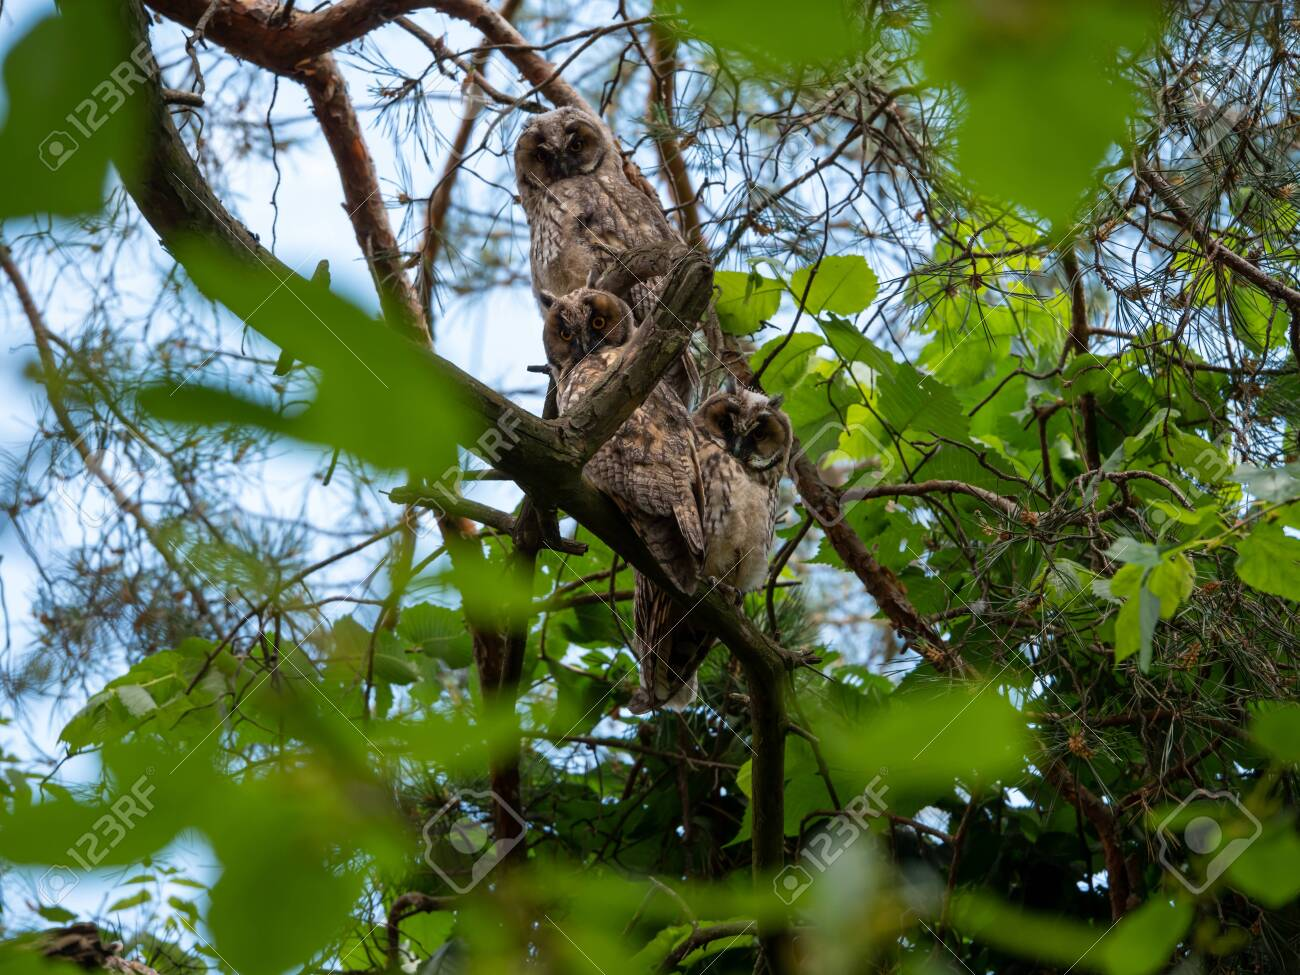 A family of owls sits on a pine branch in the afternoon. - 149743458